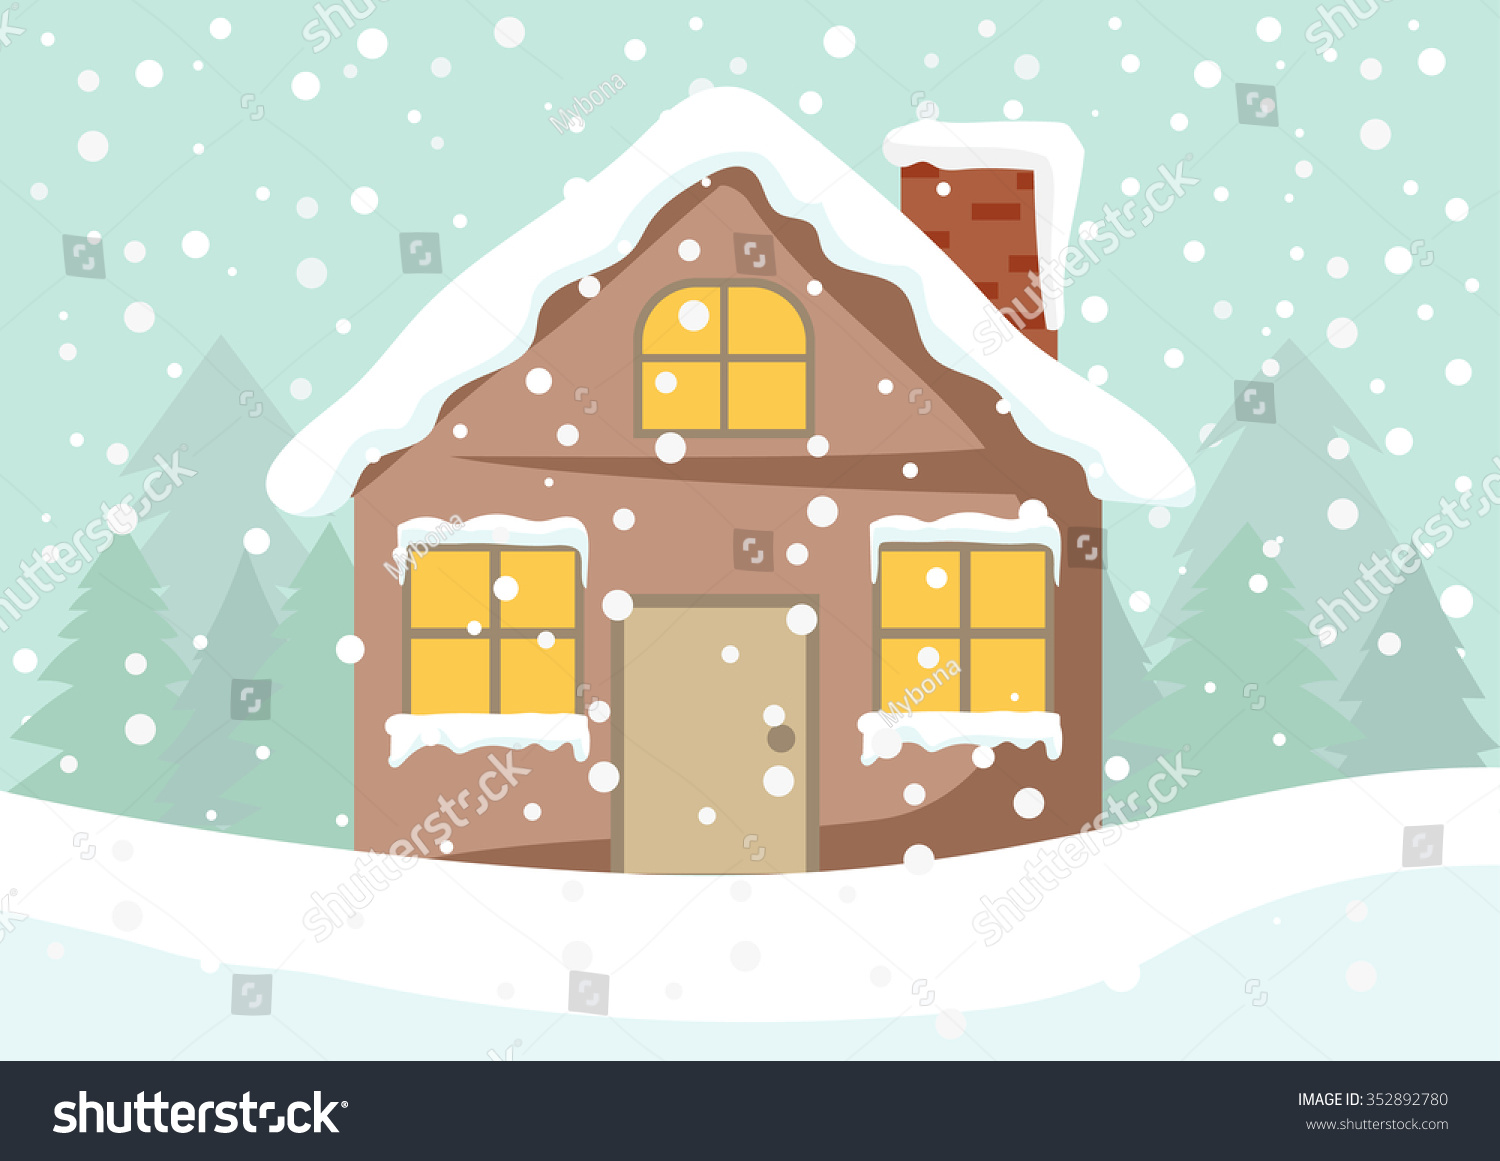 house winter clipart - photo #18